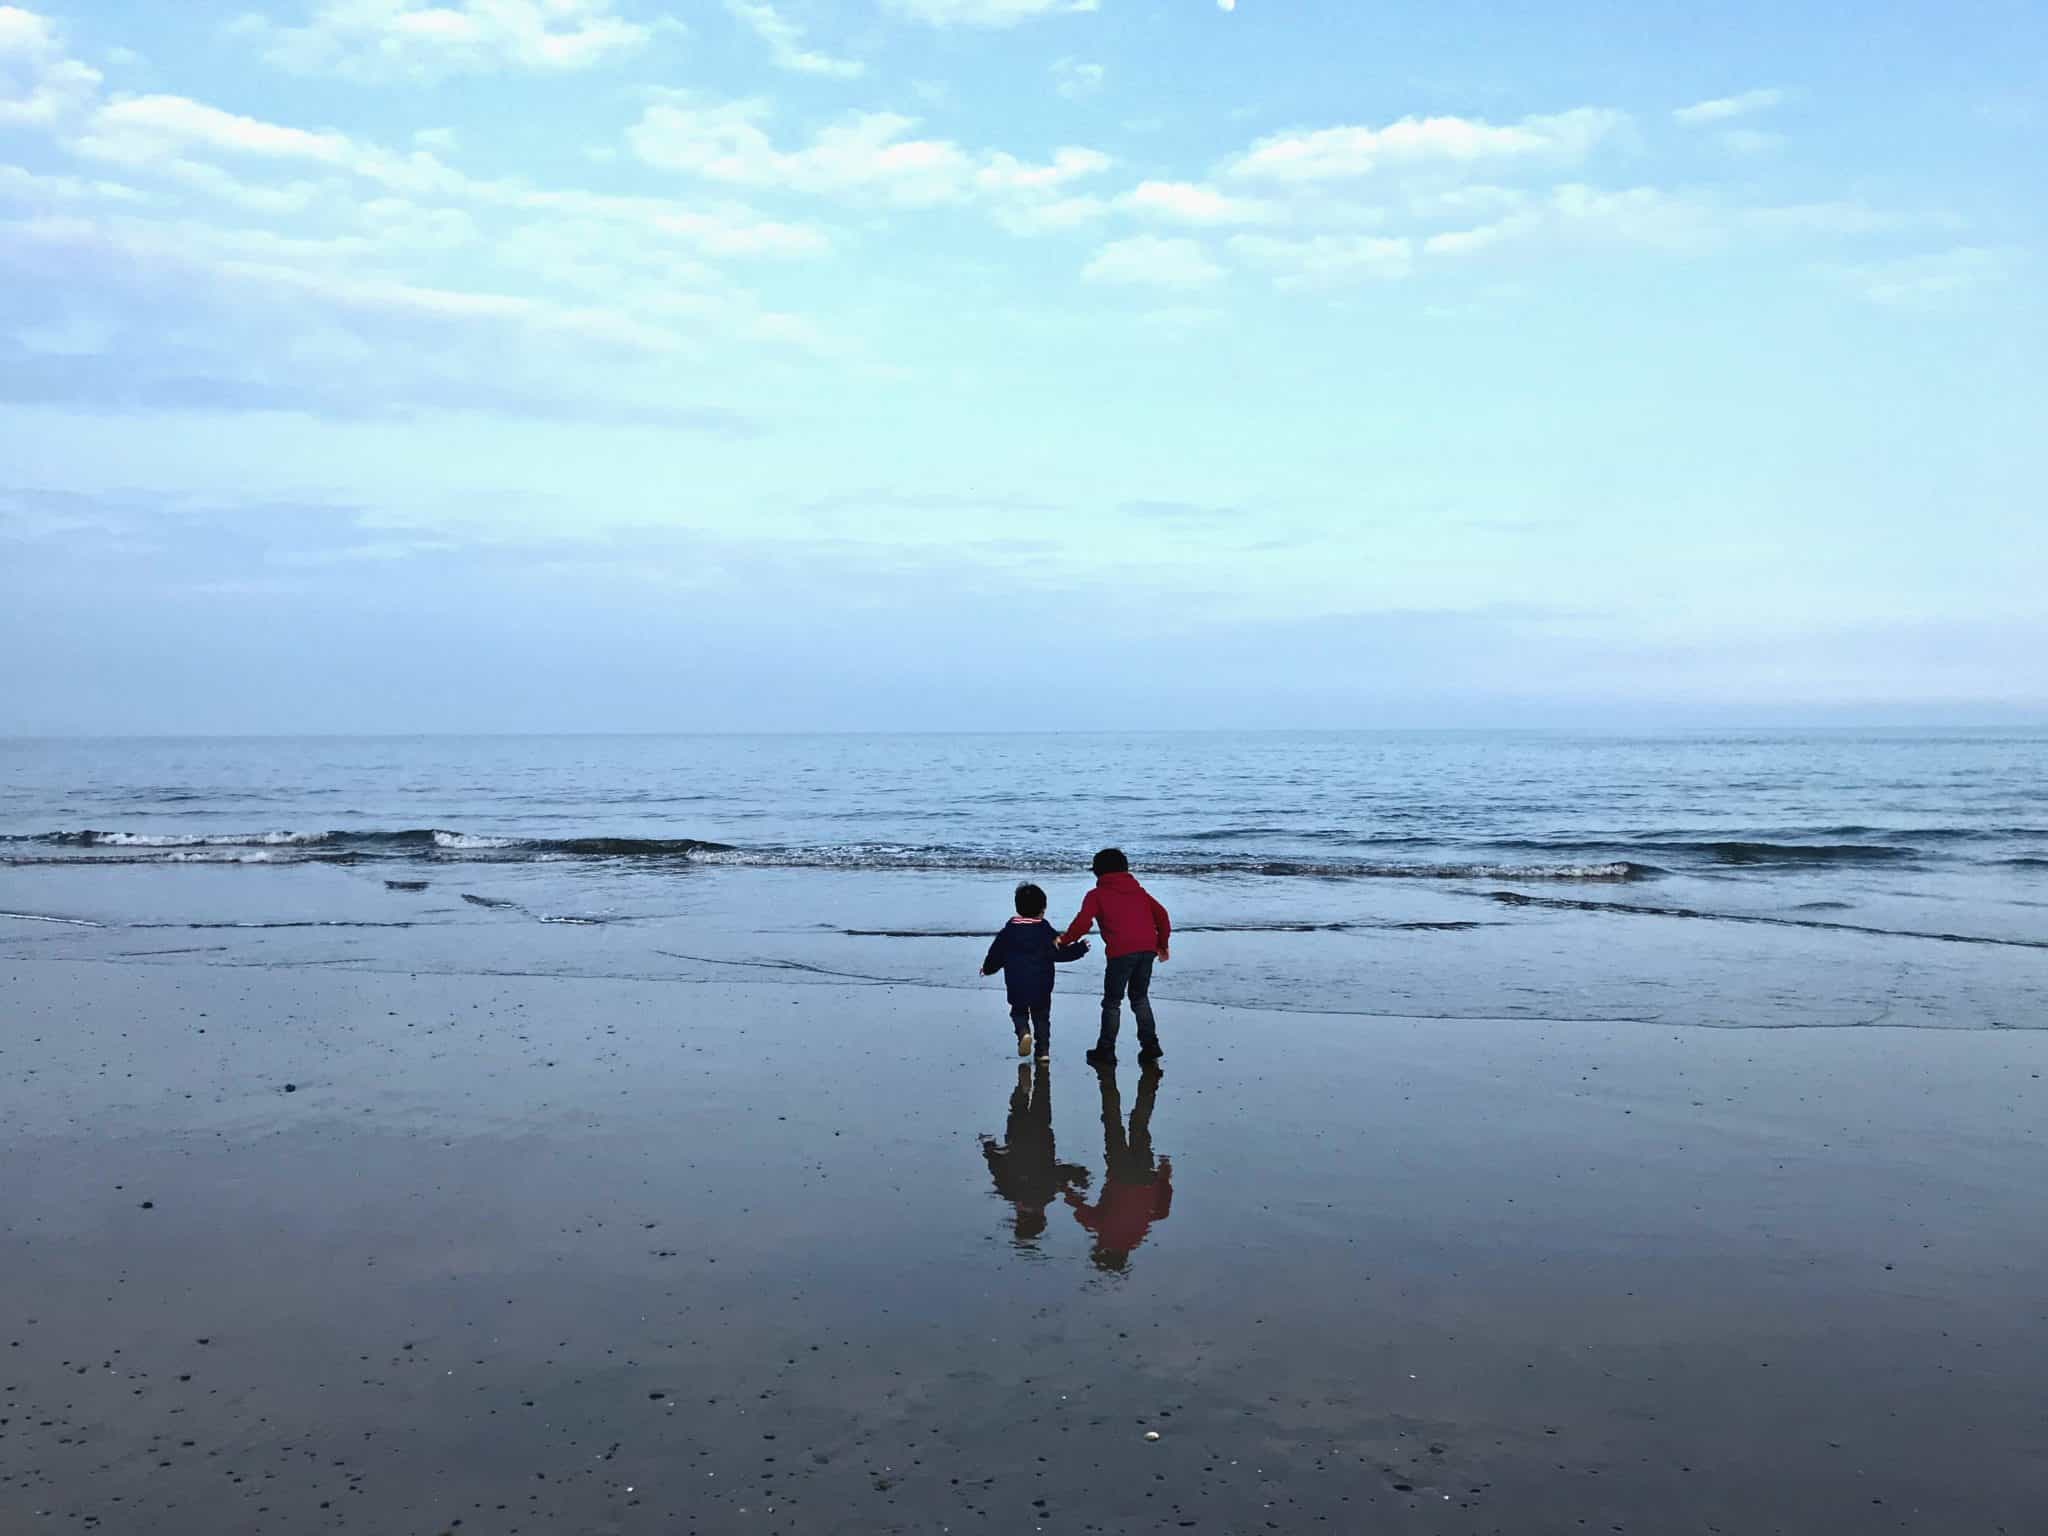 Saundersfoot: Places To Visit in Pembrokeshire | My Travel Monkey